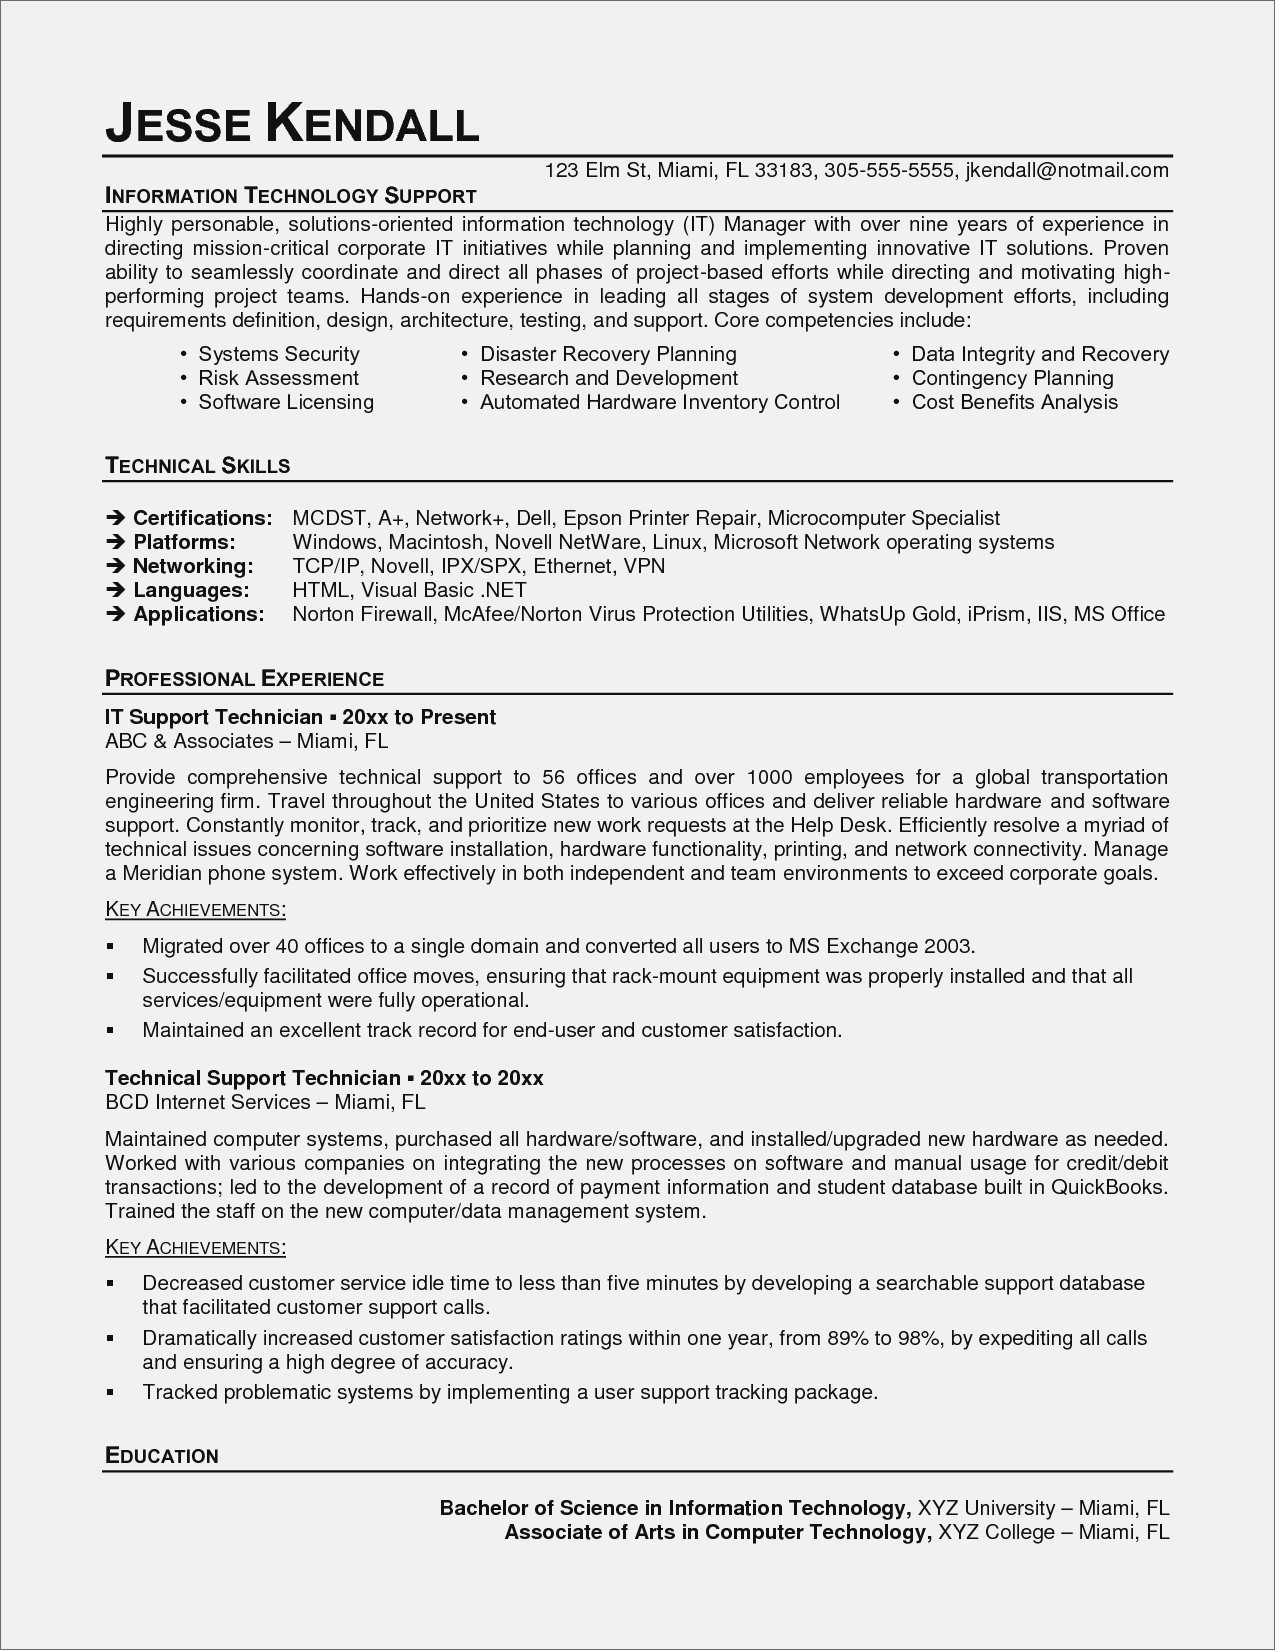 automotive resume template Collection-Auto Mechanic Resume American Resume Sample New Student Resume 0d 3-n